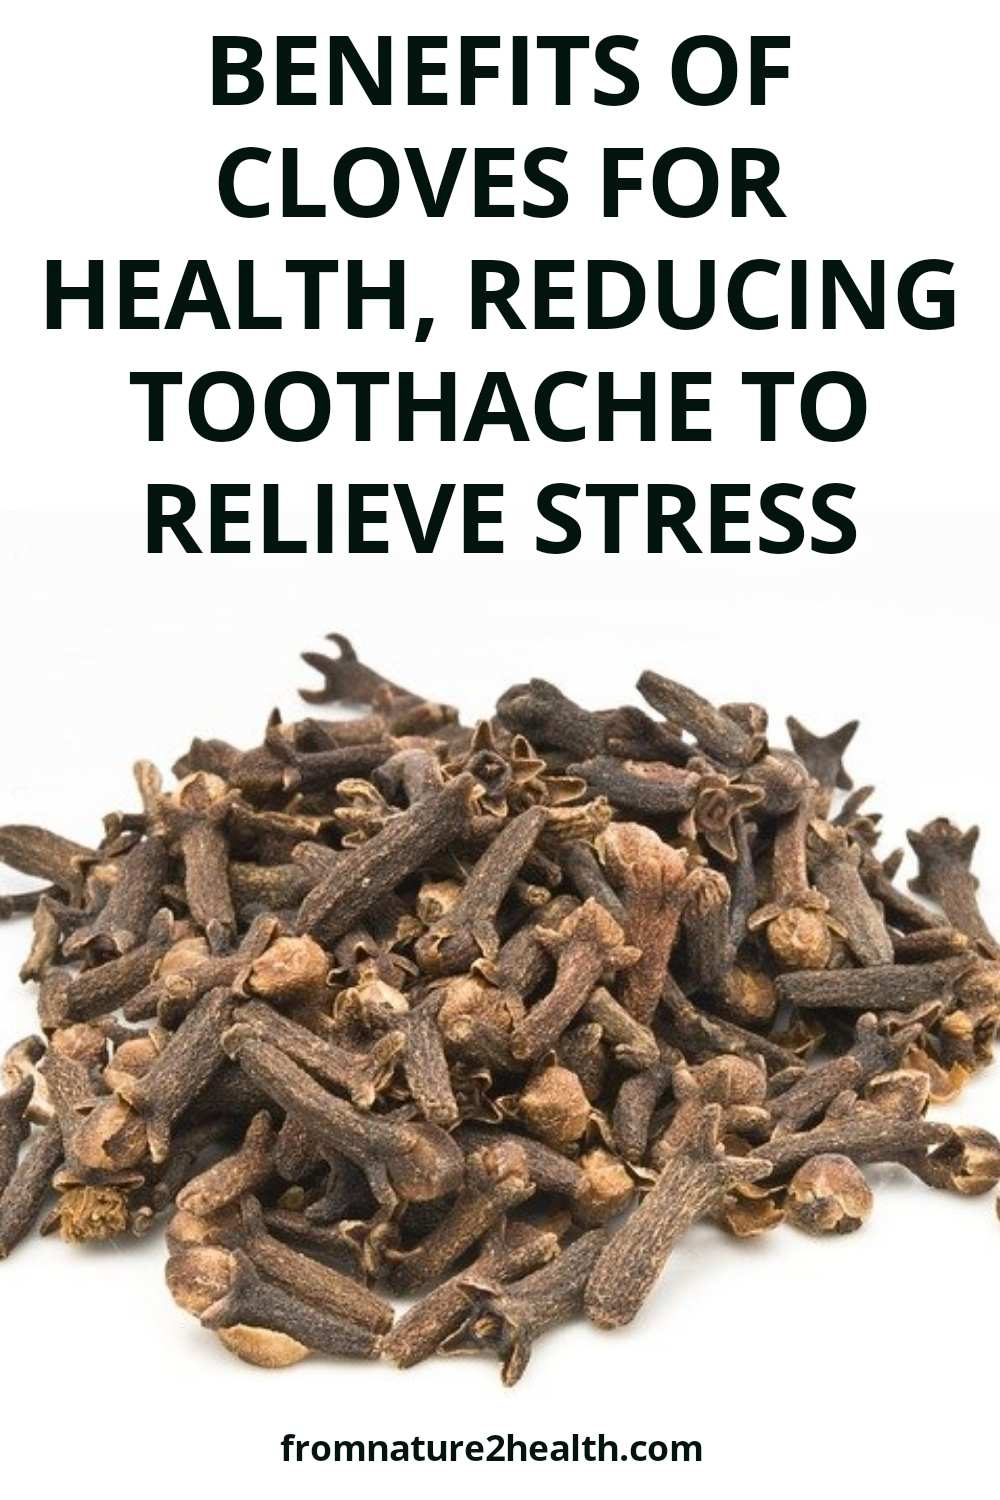 Benefits of Cloves for Health, Reducing Toothache to Relieve Stress